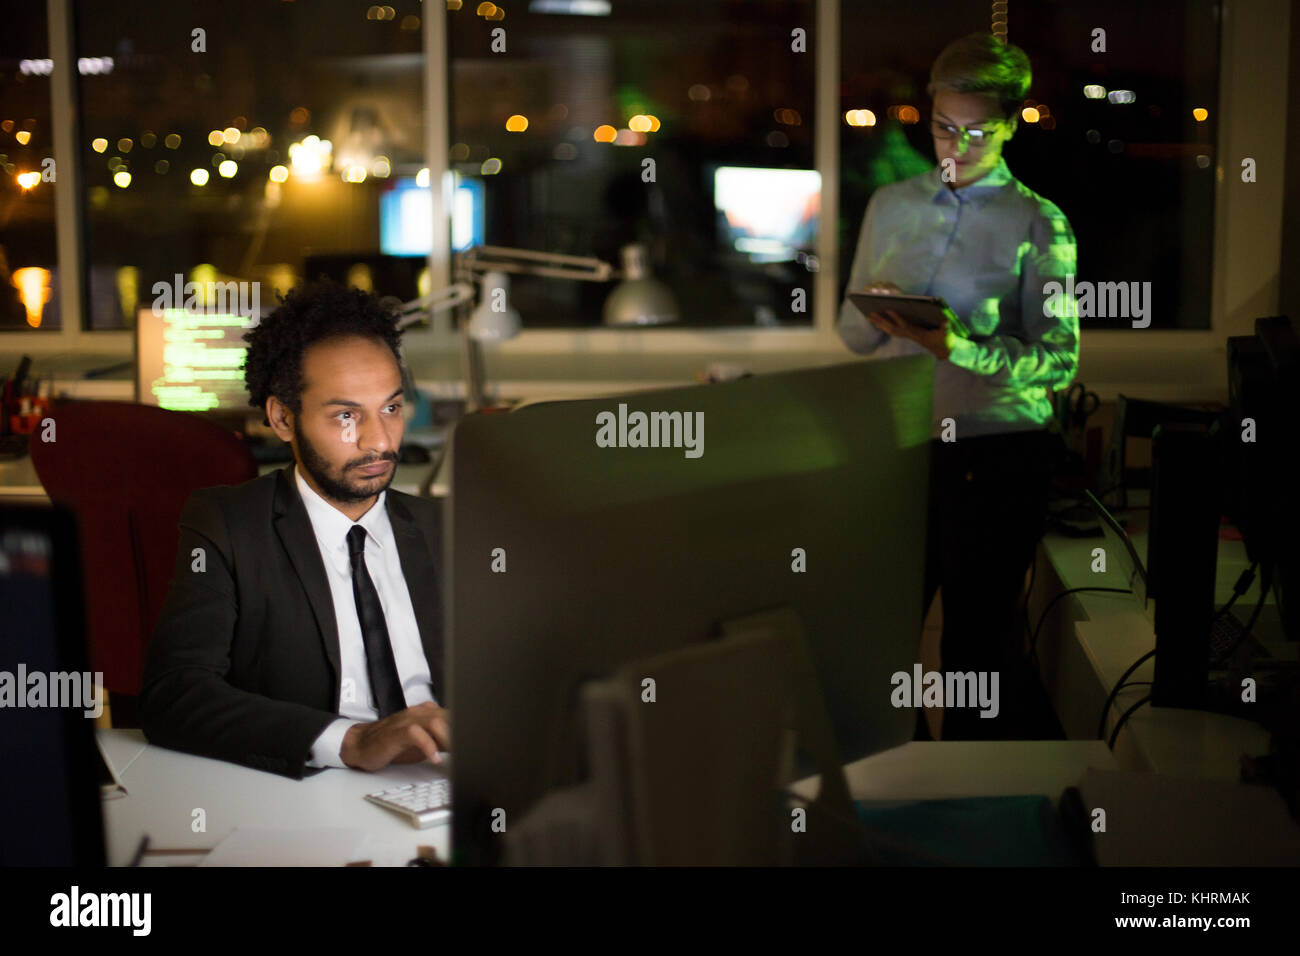 Busy dim open plan office: mixed race manager wearing stylish suit working on promising project with help of computer - Stock Image